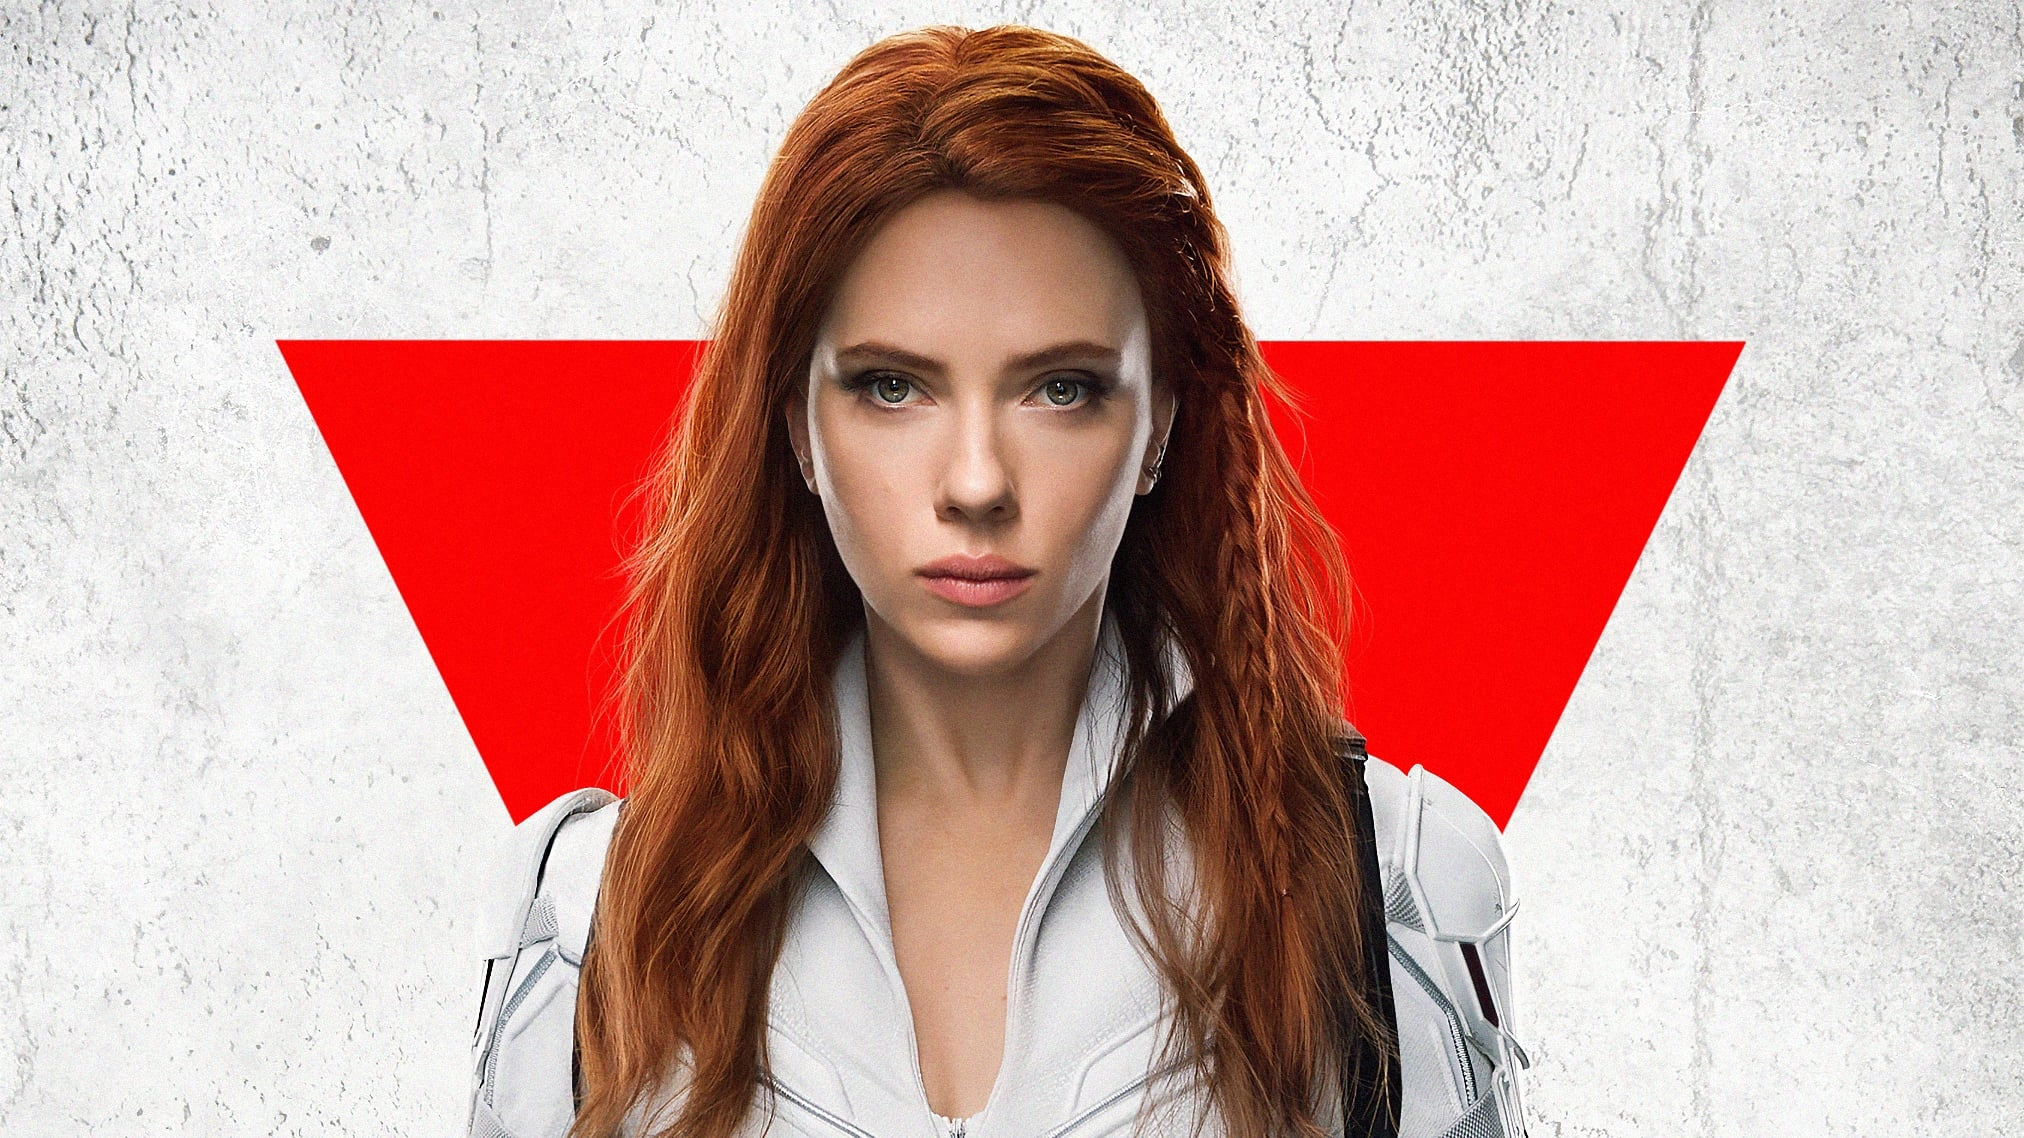 The 7 Marvel Movies You Should See Before 'Black Widow'